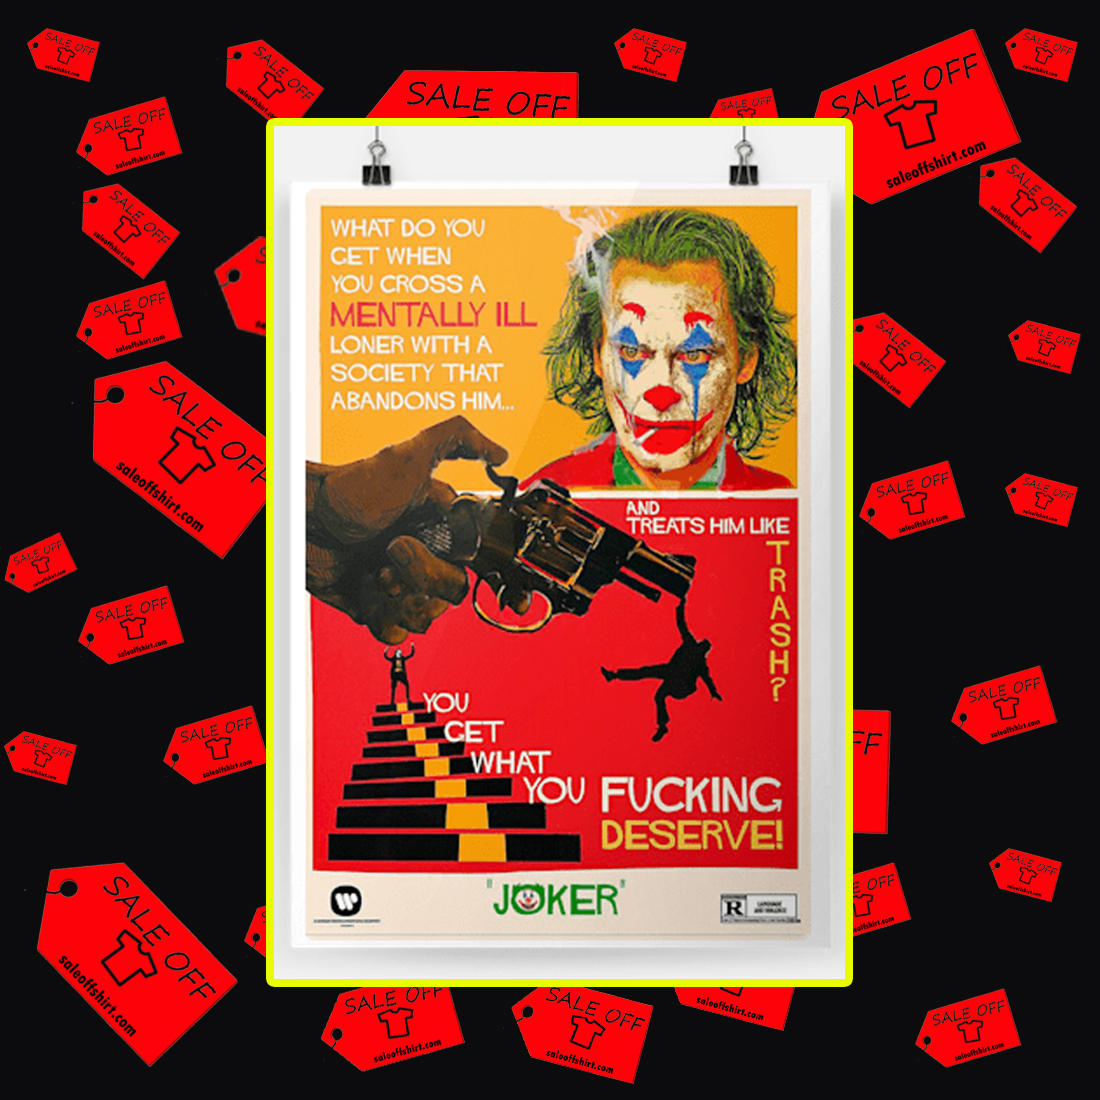 Joker What do you get when you cross a mentally ill loner with a society that abandons him poster